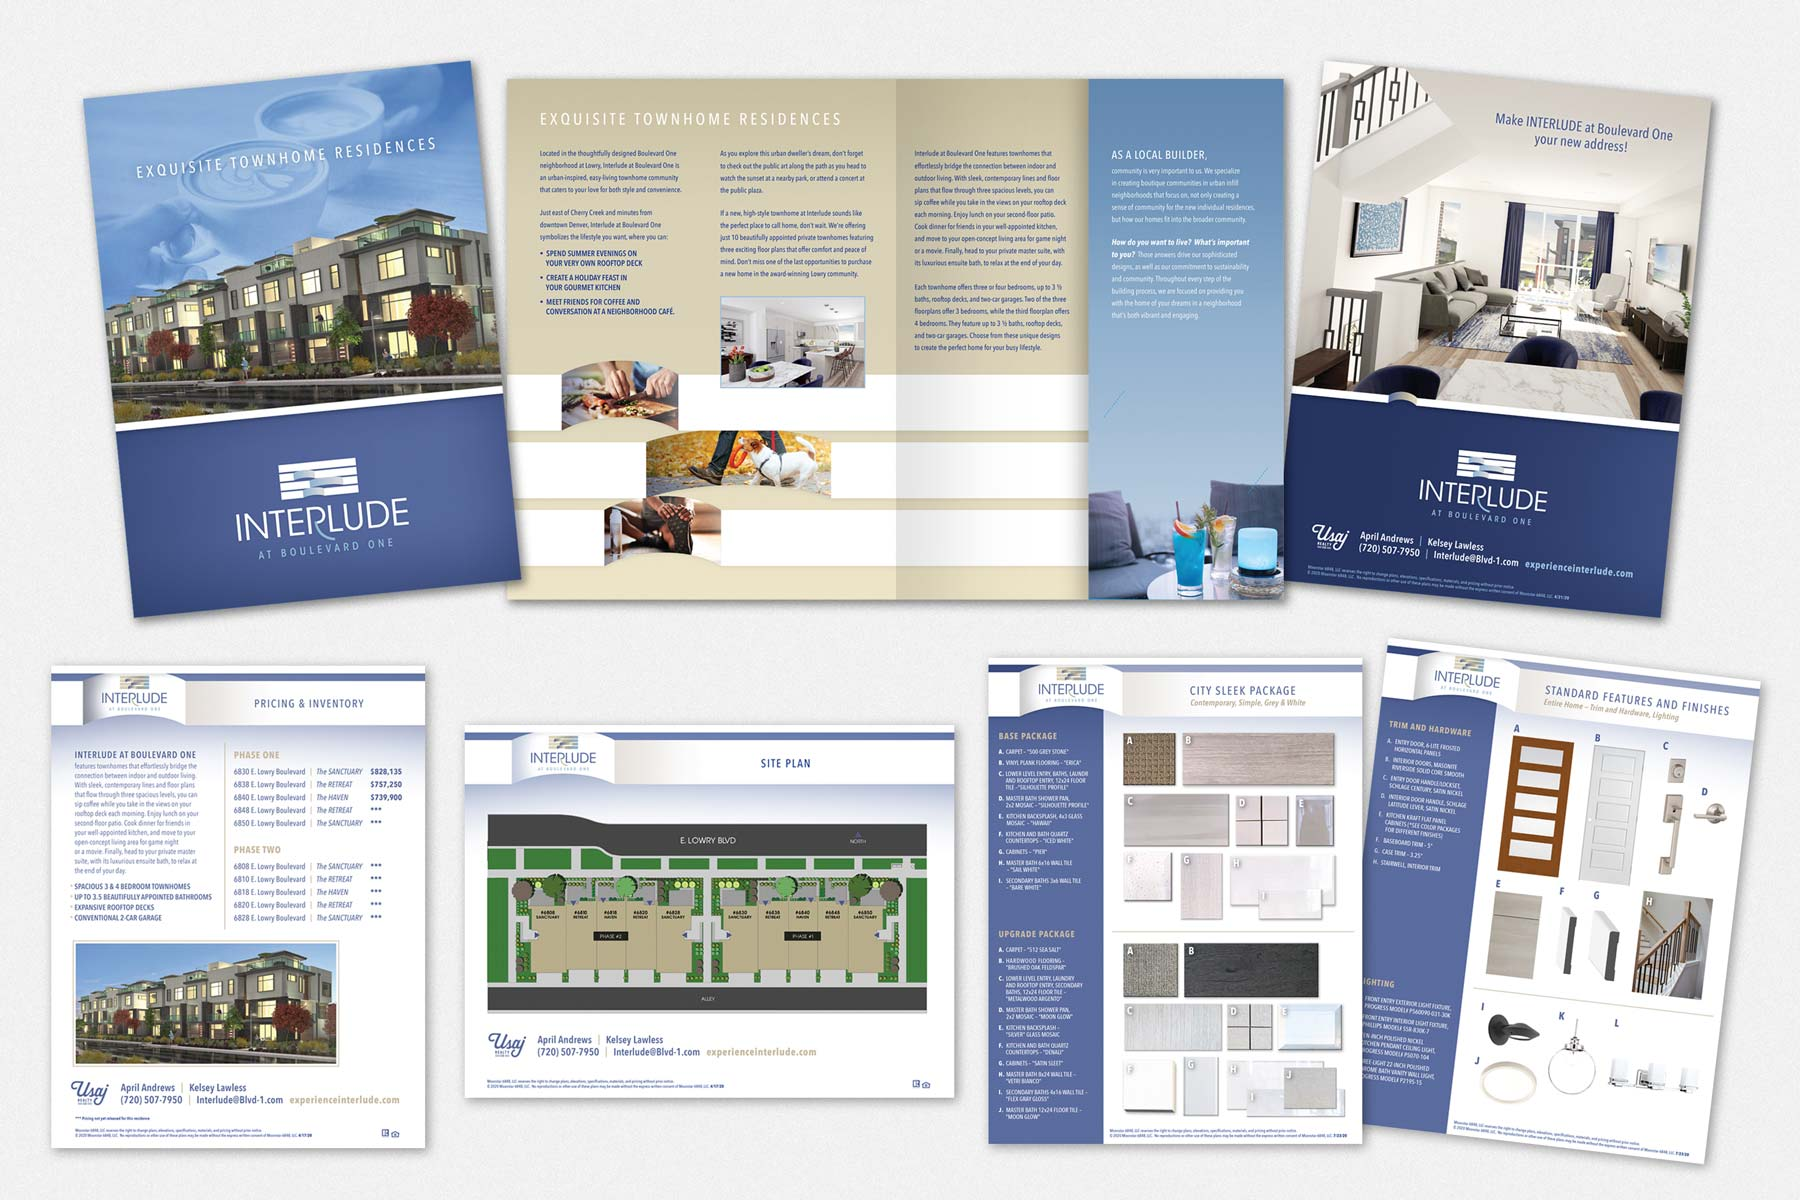 Brochure Design for Interlude at Boulevard One in Lowry